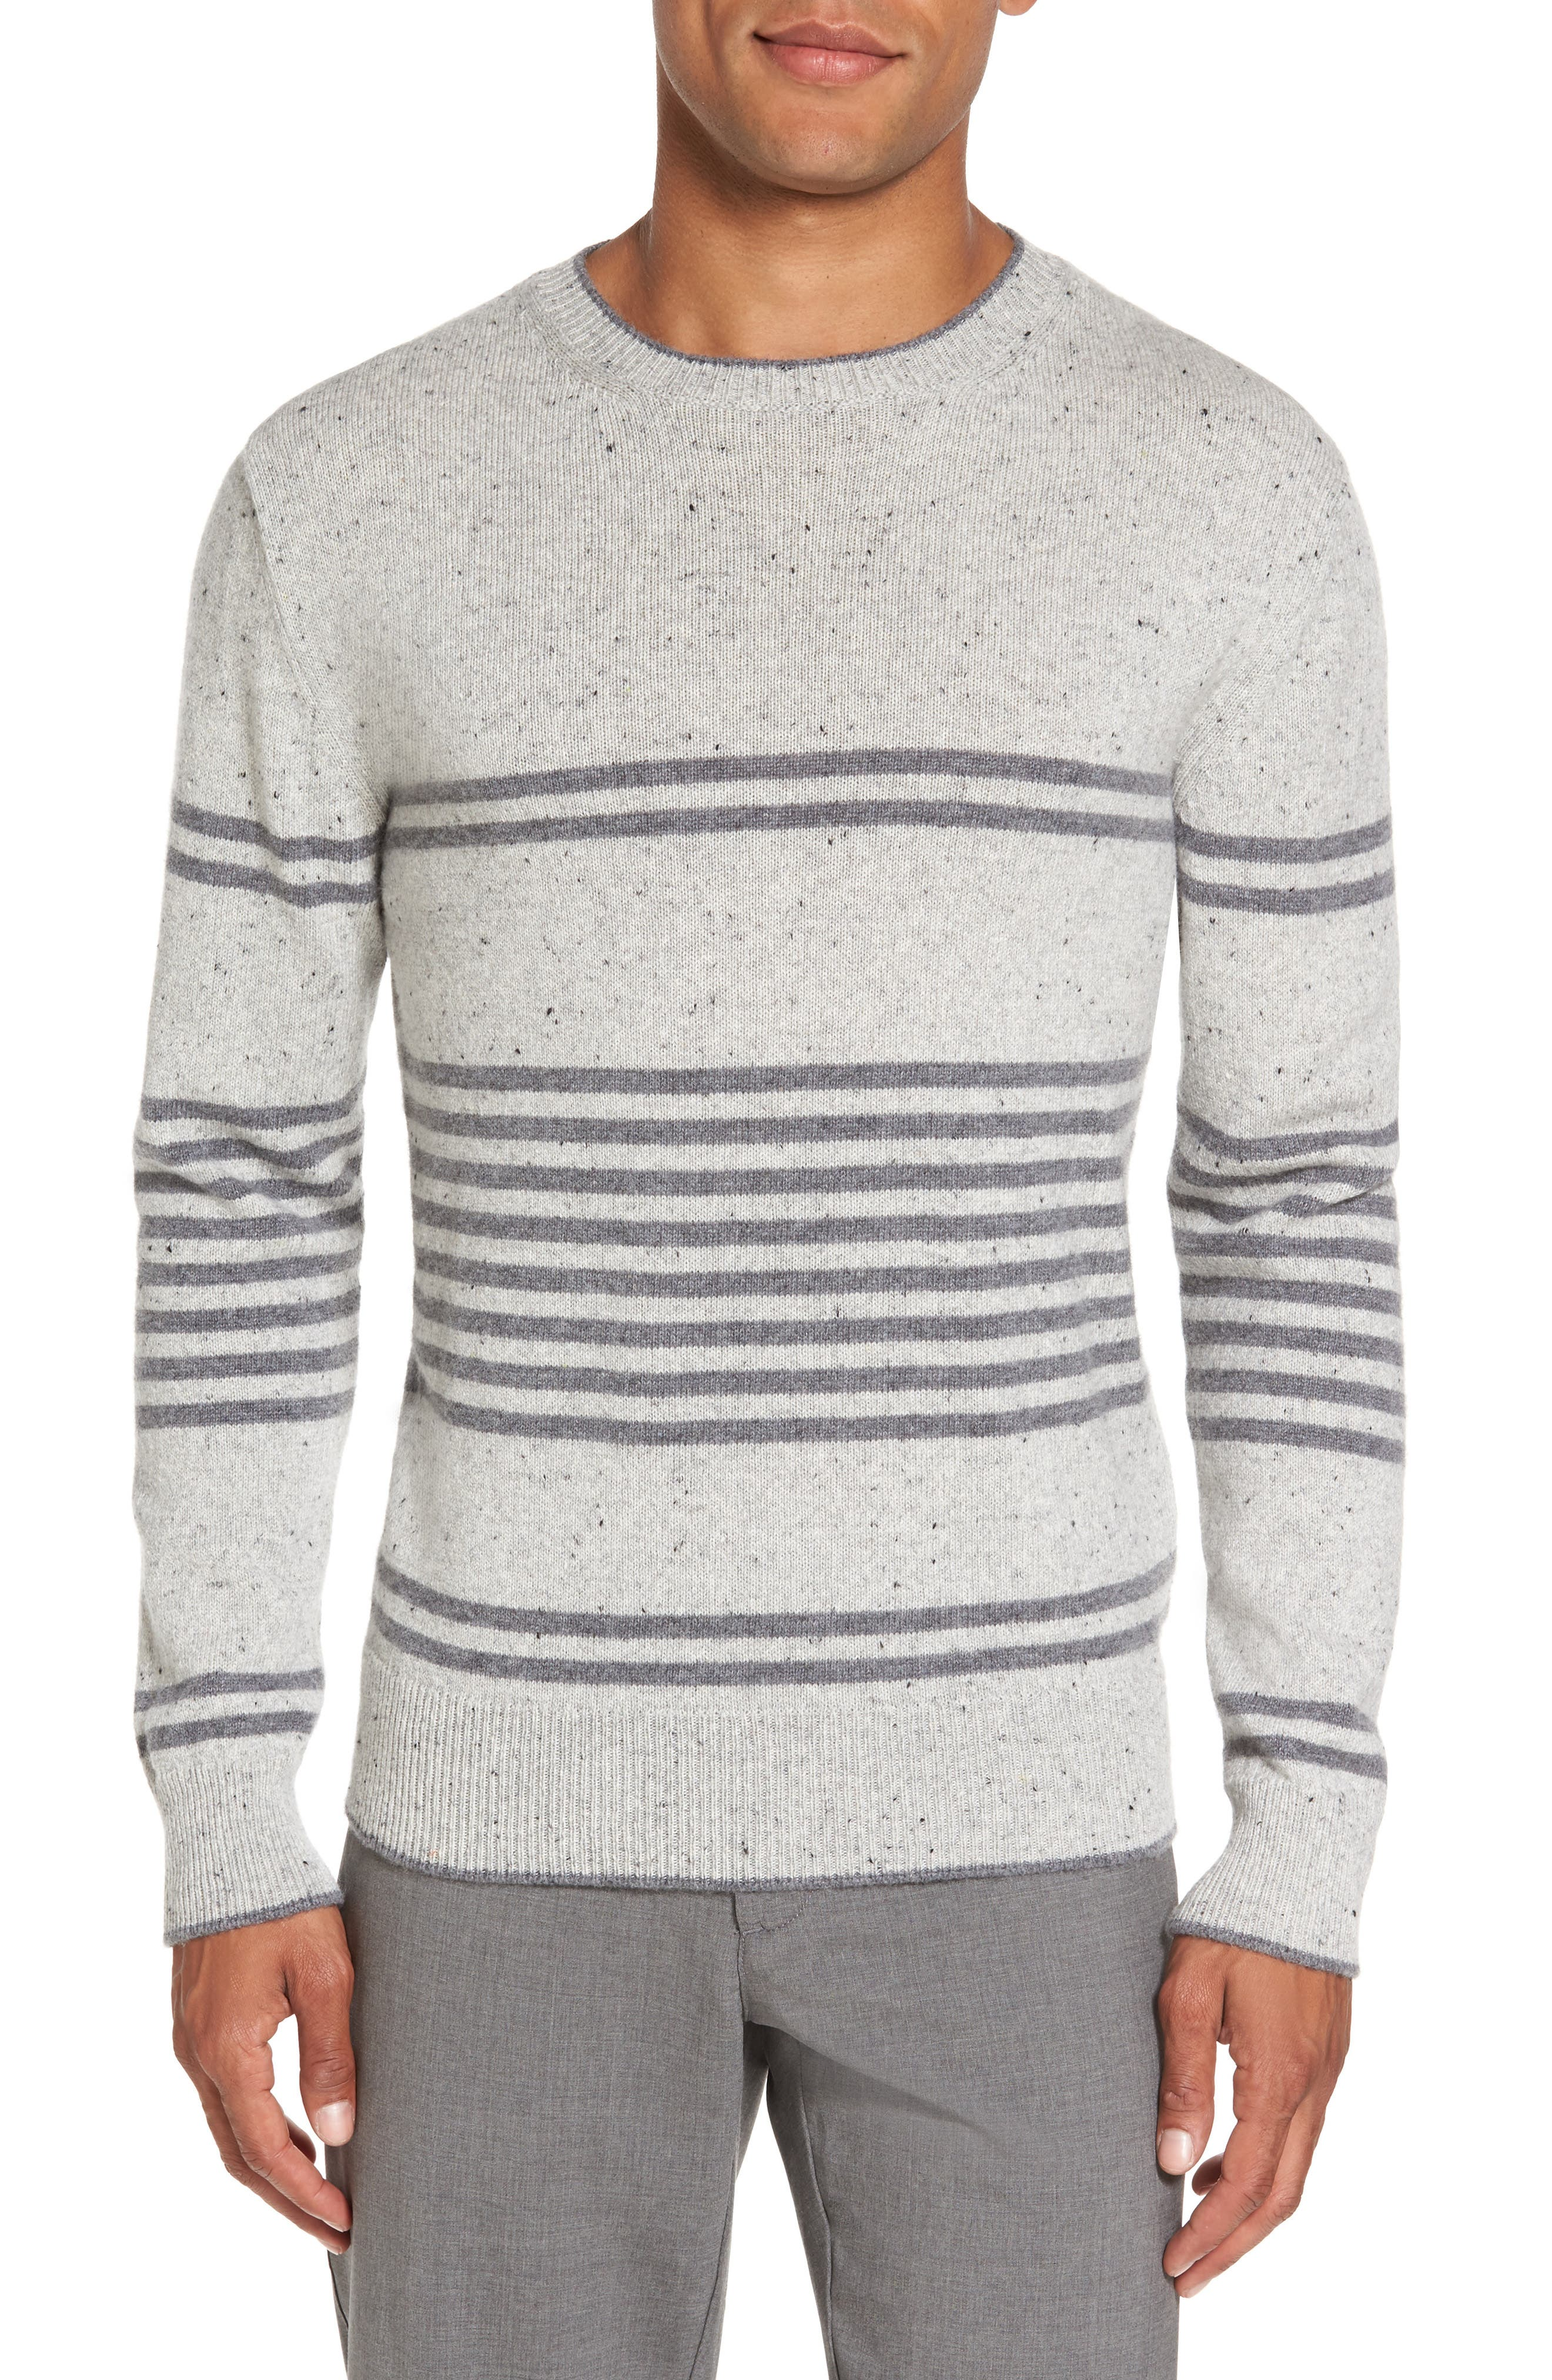 Donegal Stripe Cashmere Sweater,                         Main,                         color, 020